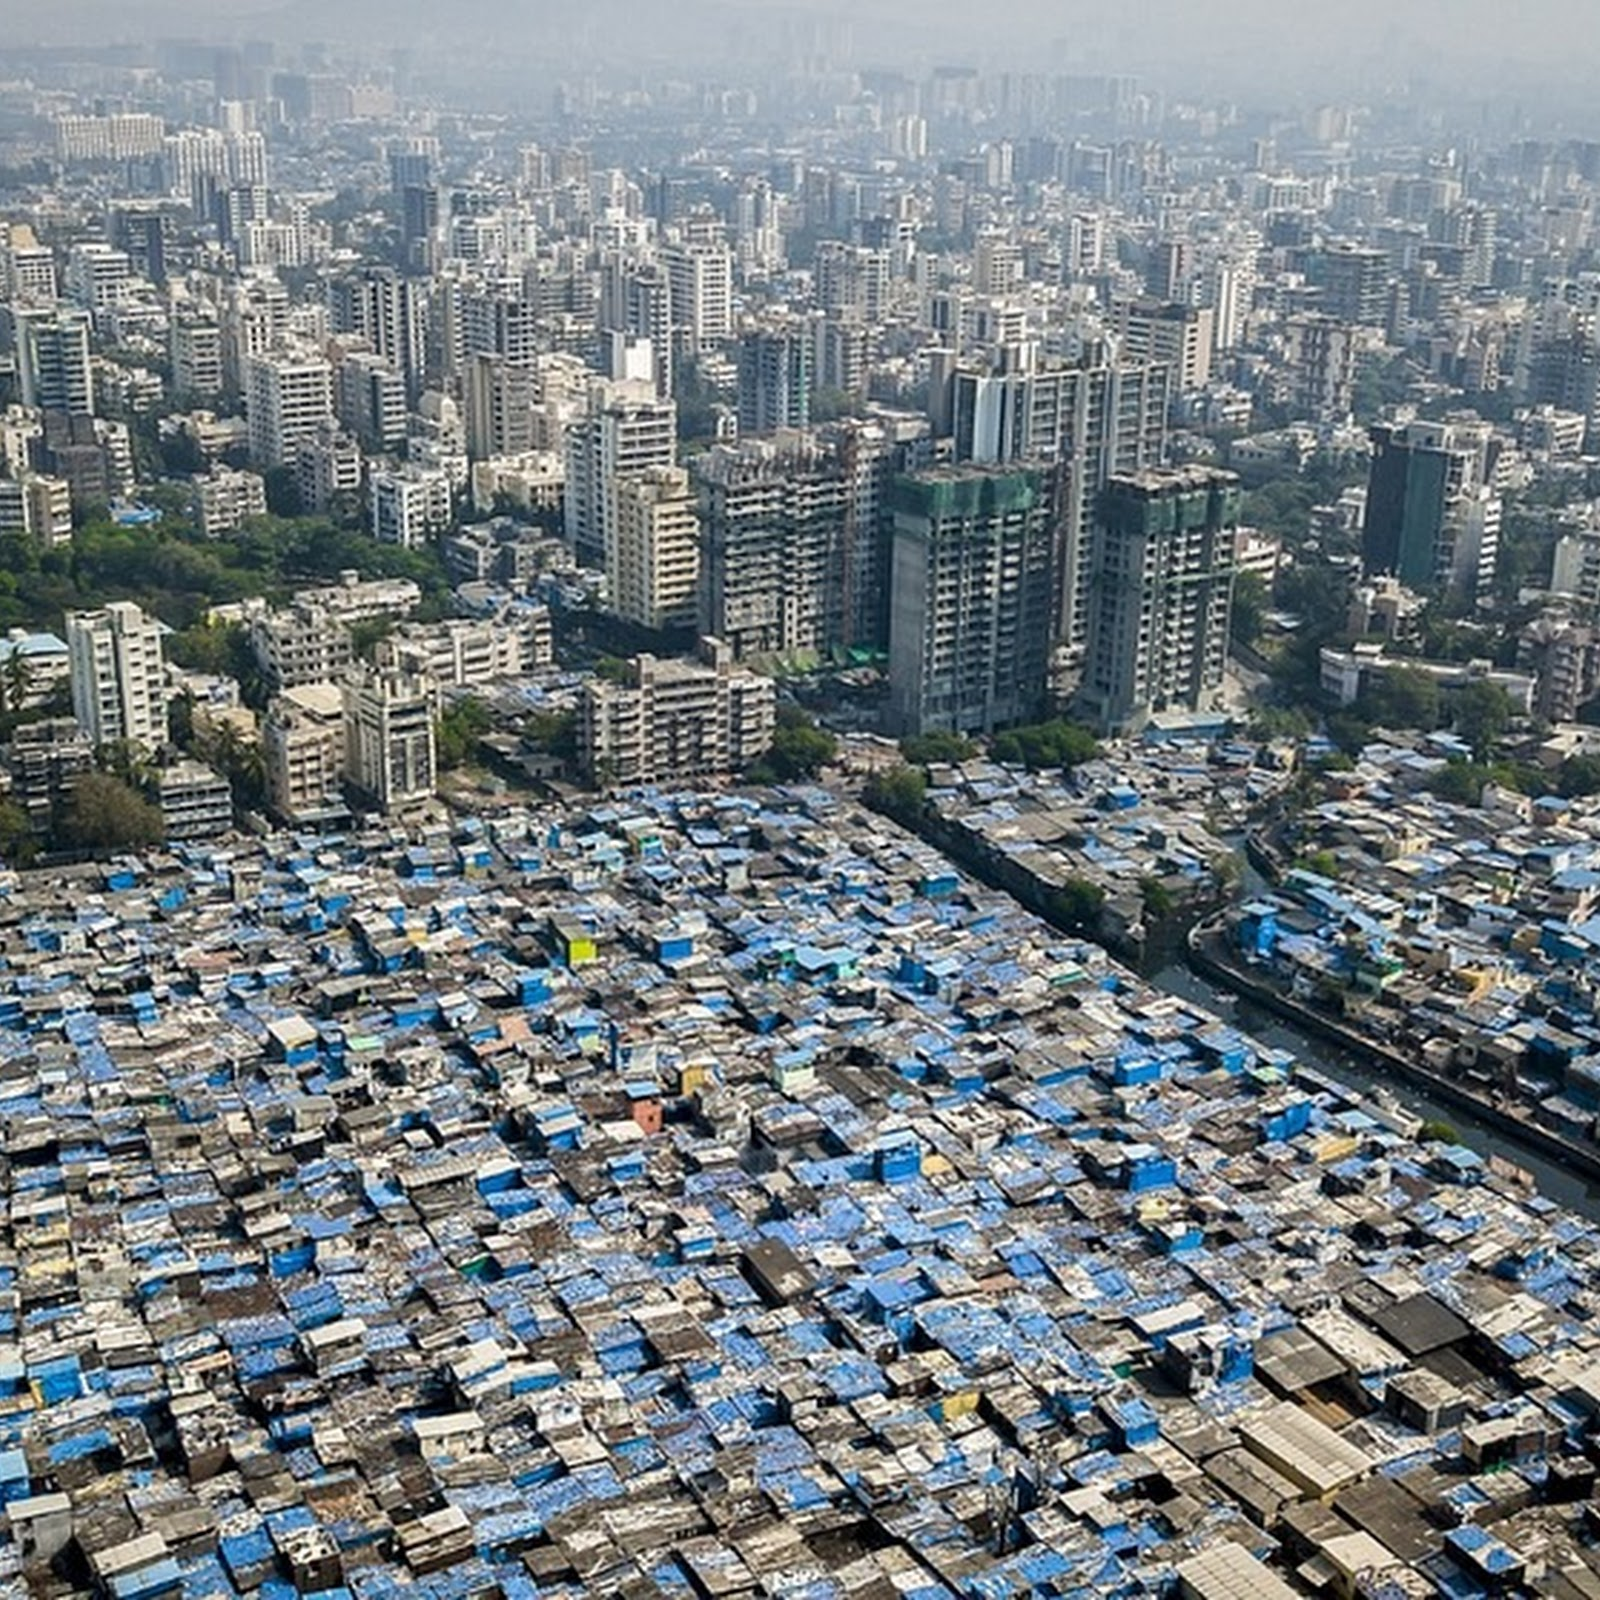 Photographer Uses Drone to Capture Social Inequality Across The World